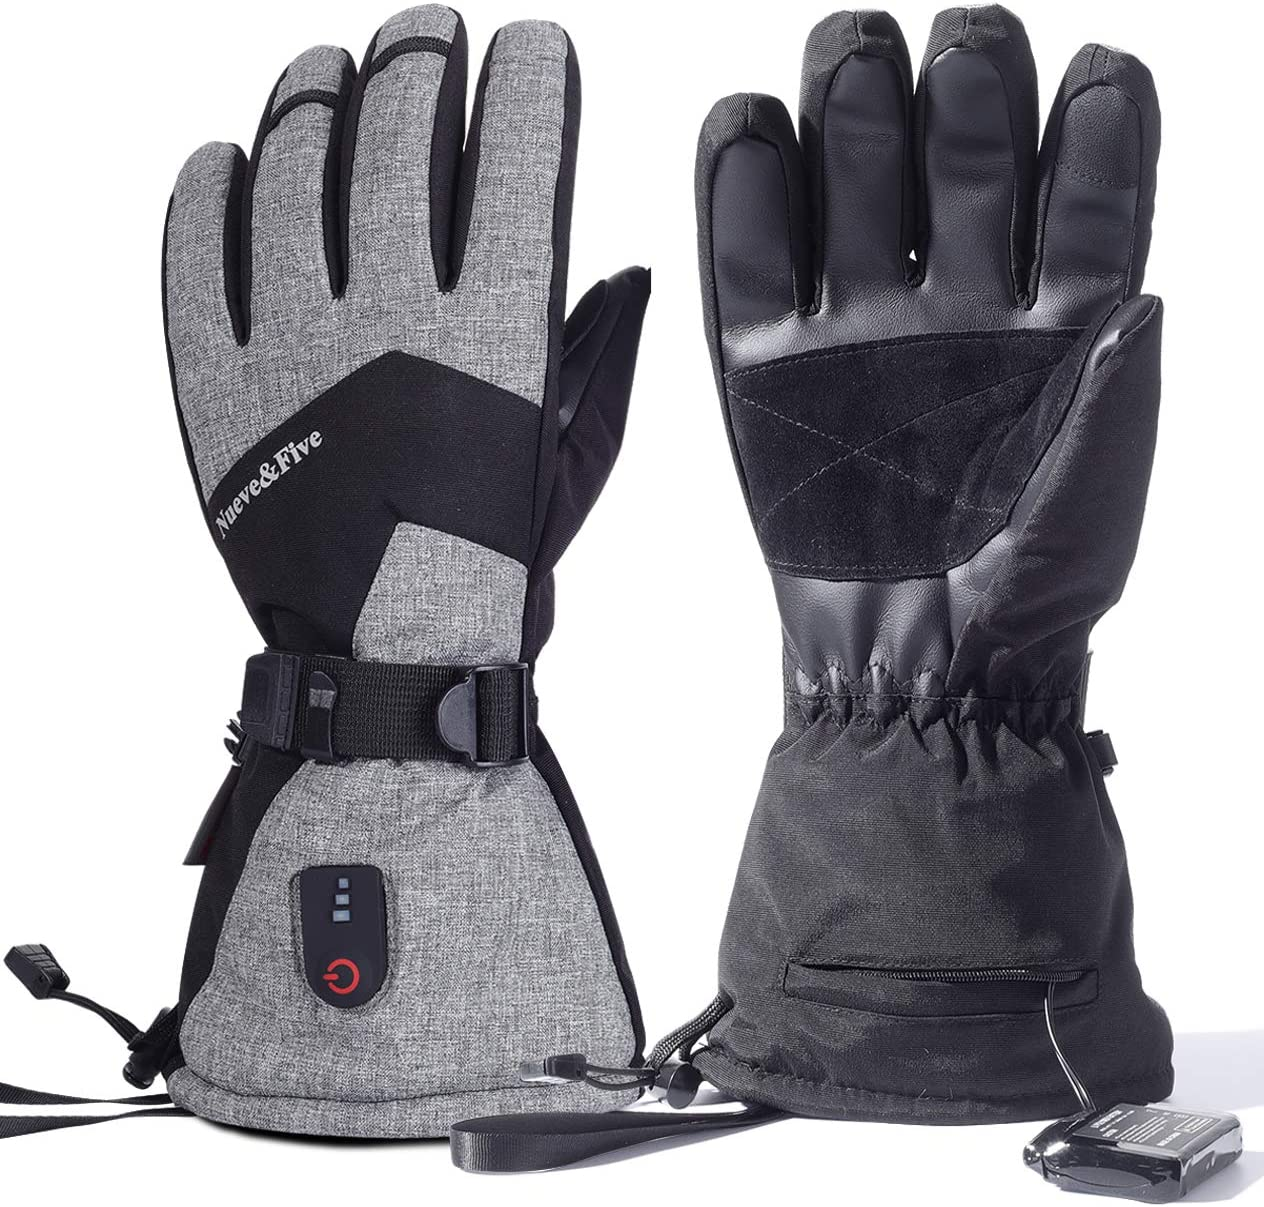 NueveFive Rechargeable Cash special price Heated Gloves for Battery Be super welcome Women and Men